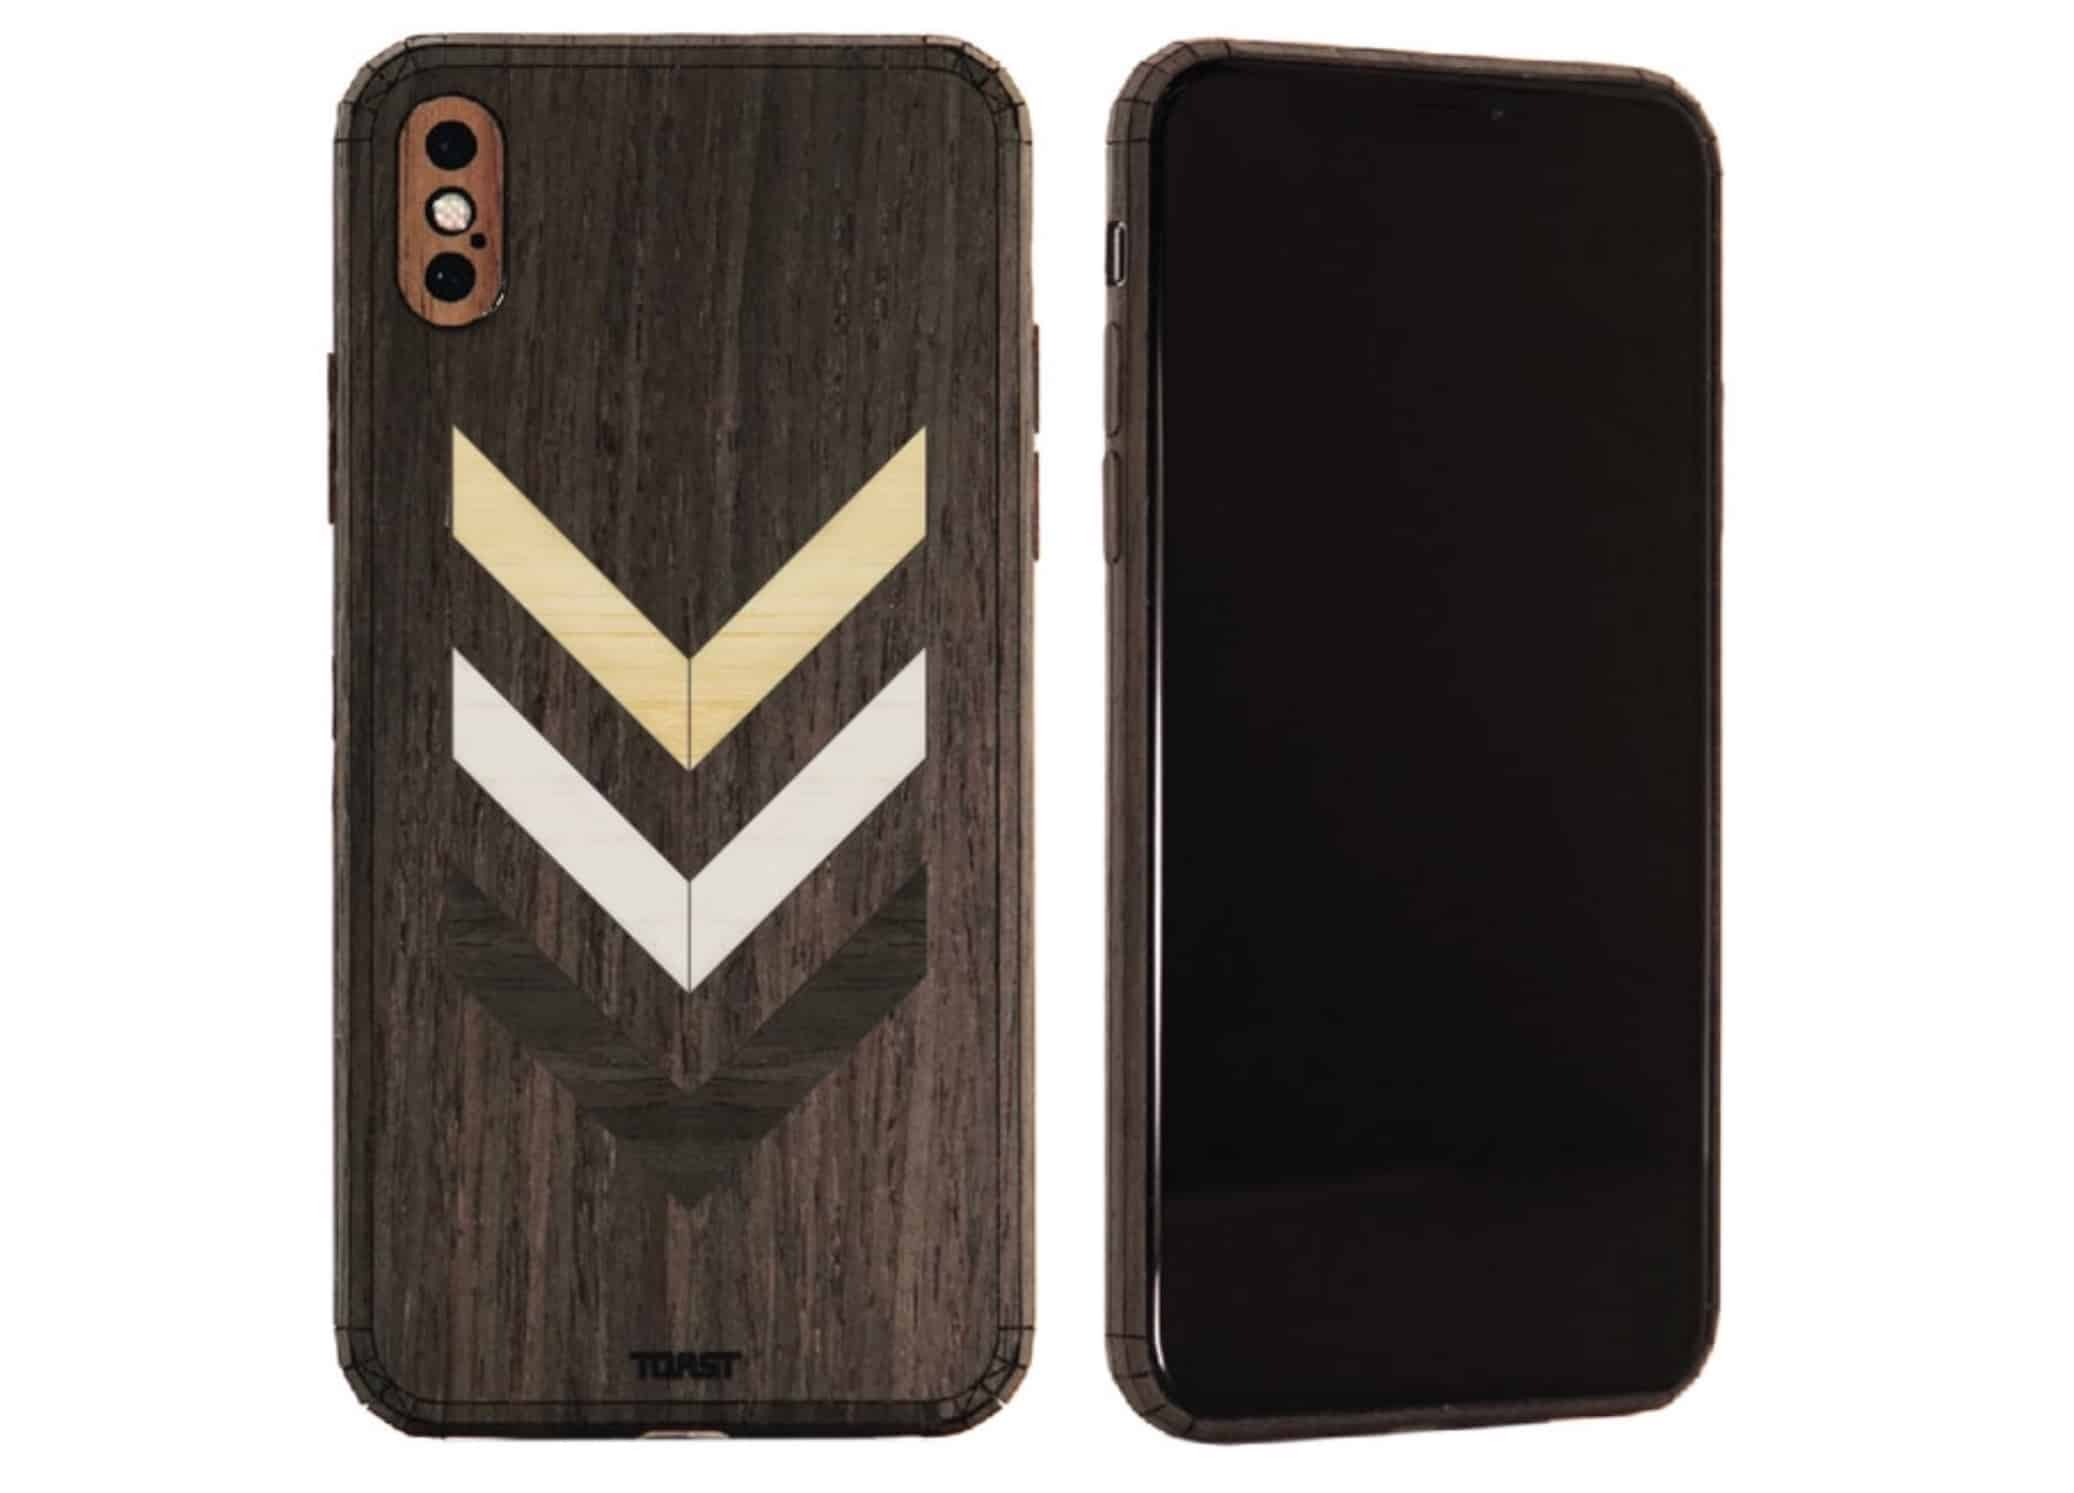 Toast wooden skin for iPhone